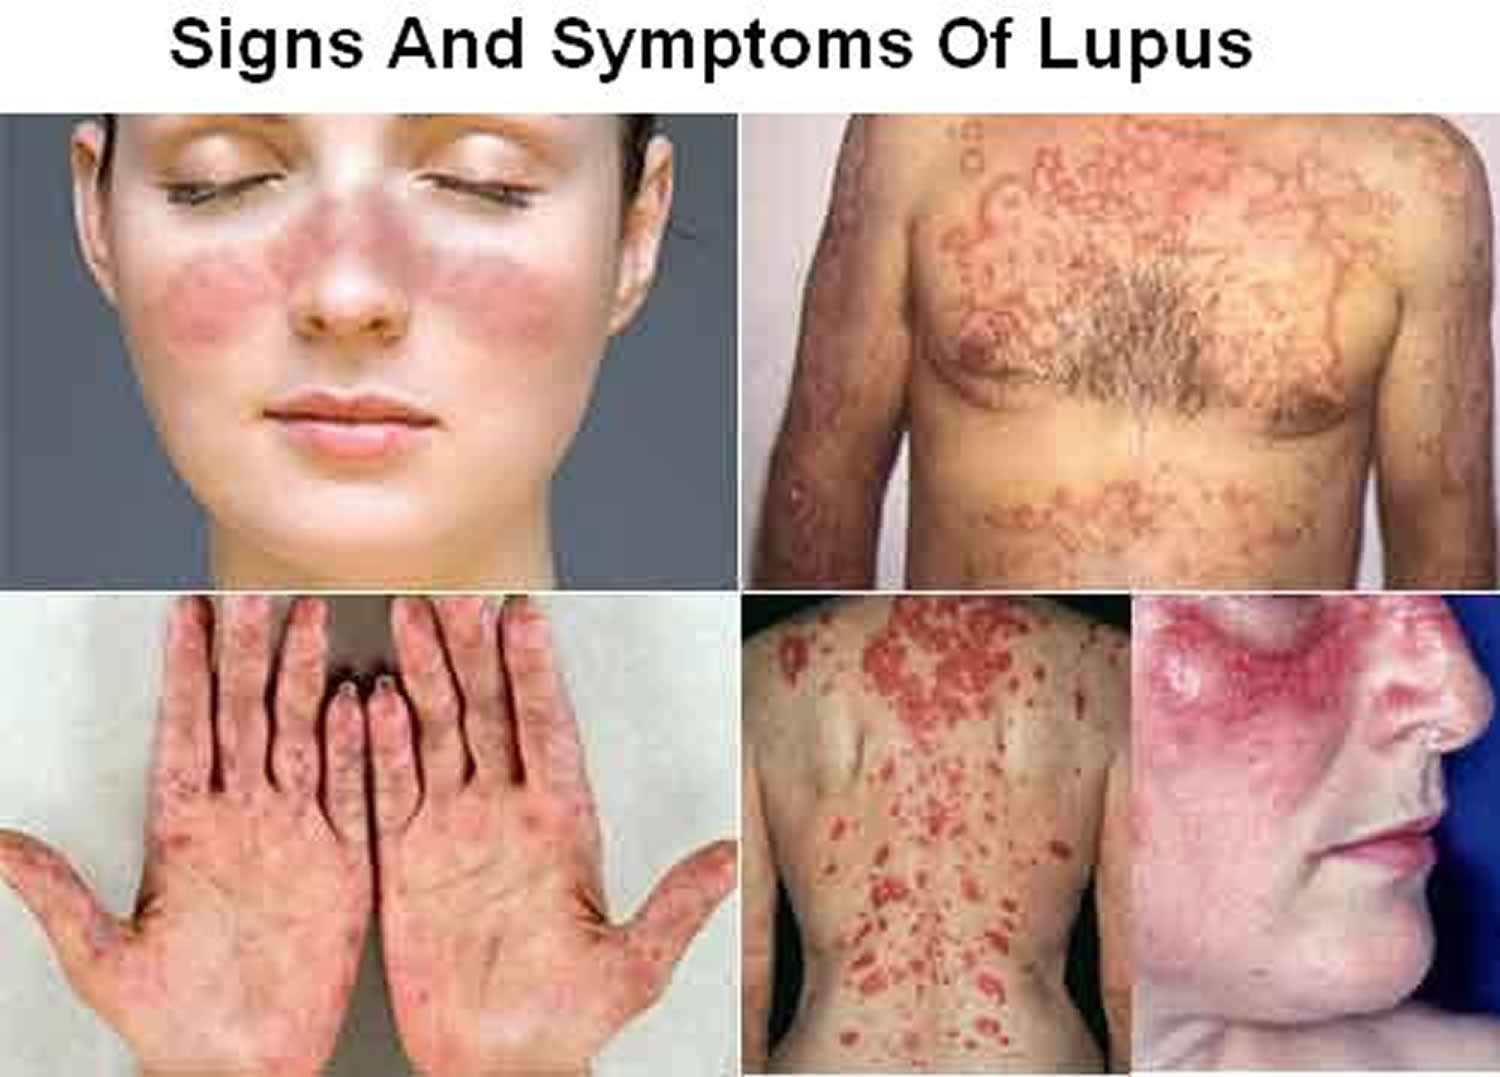 systemic lupus Systemic lupus erythematosus definition, an autoimmune inflammatory disease  of the connective tissues, occurring mainly among middle-aged women, chiefly.